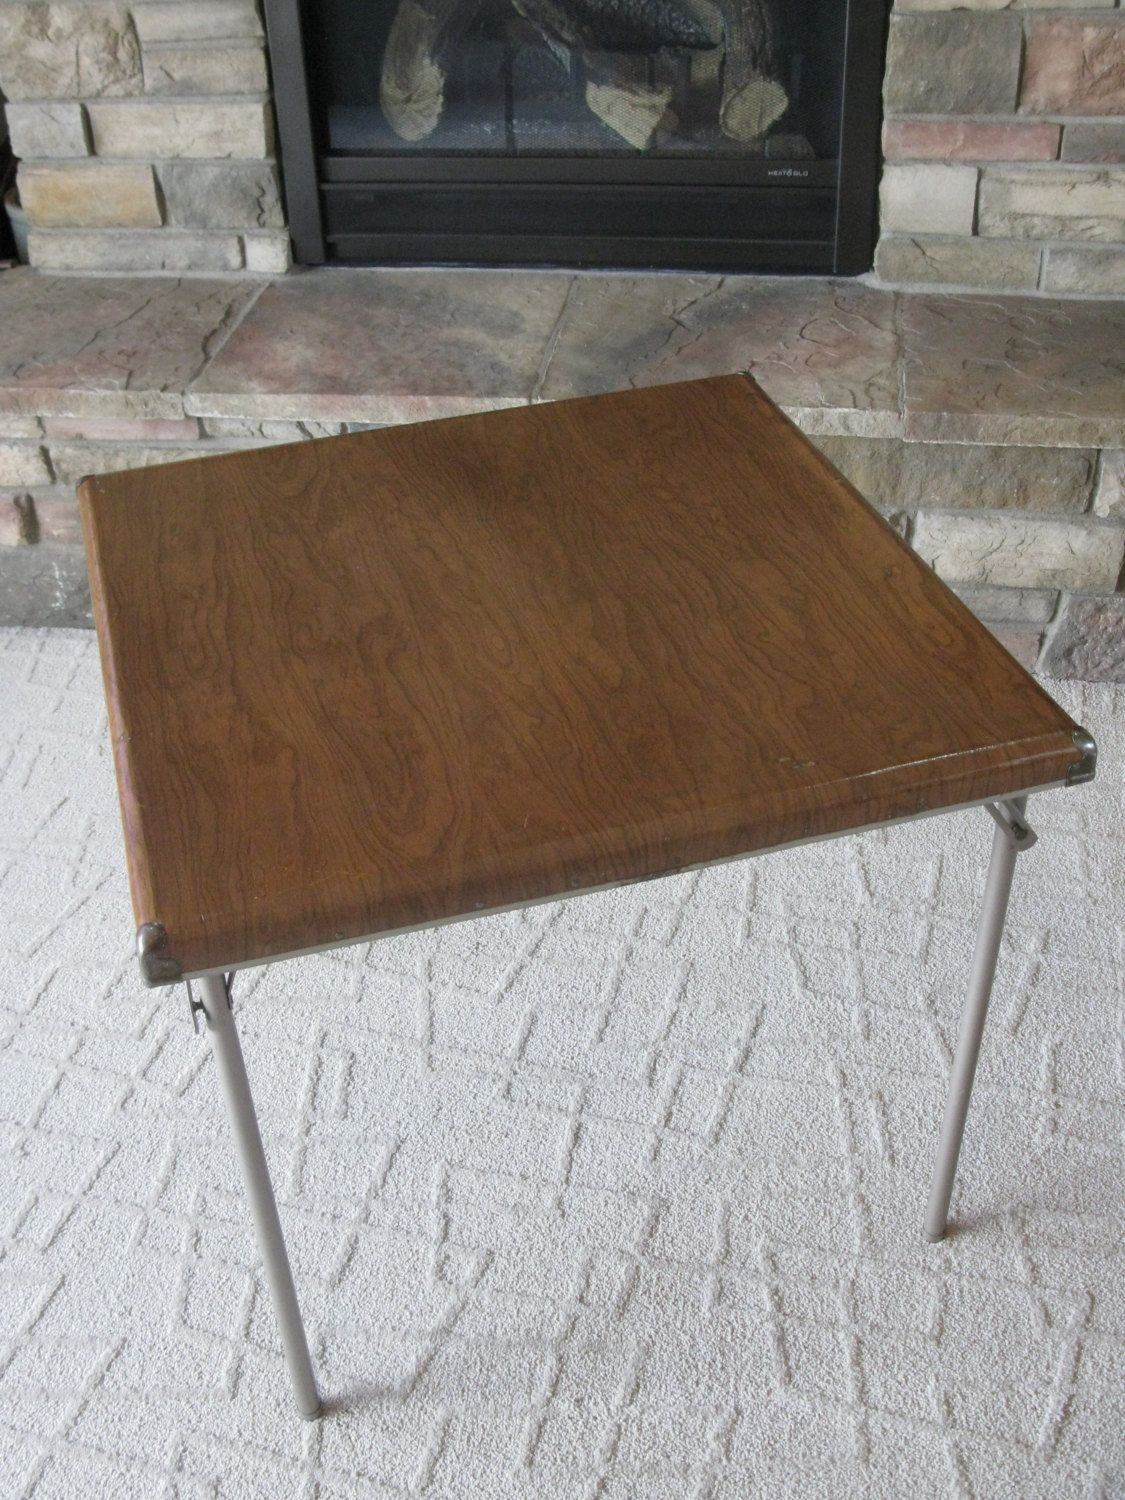 Vintage Samsonite Card Table   1950s  Folding Table  Metal Legs  Faux Wood  Design